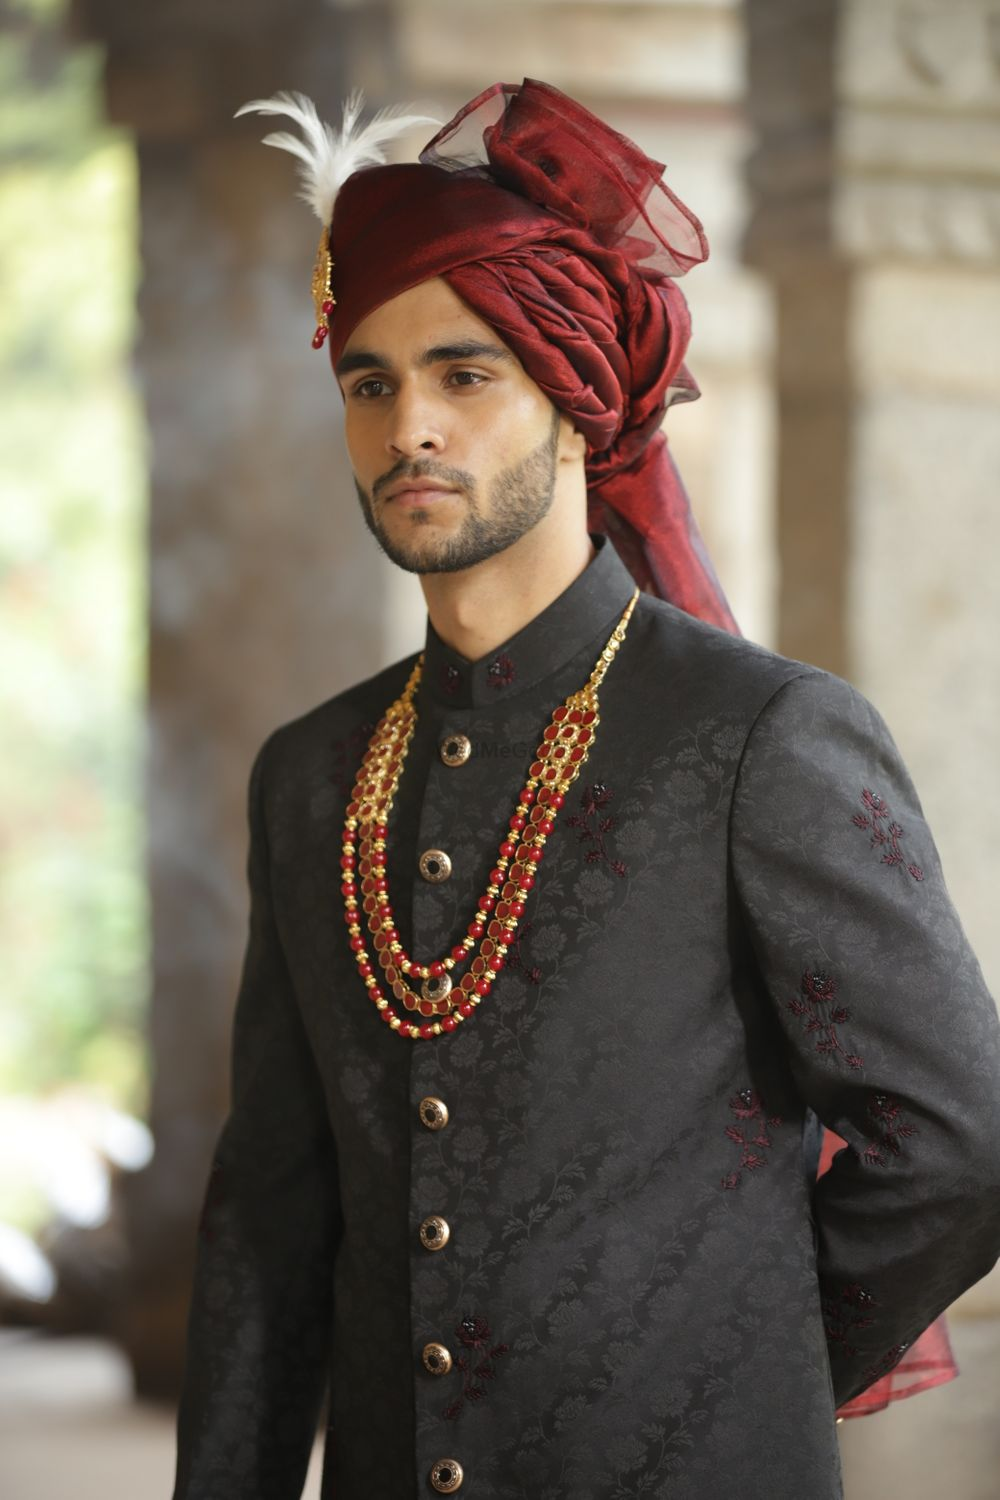 Photo of Groom in embroidered black sherwani and deep red safa.